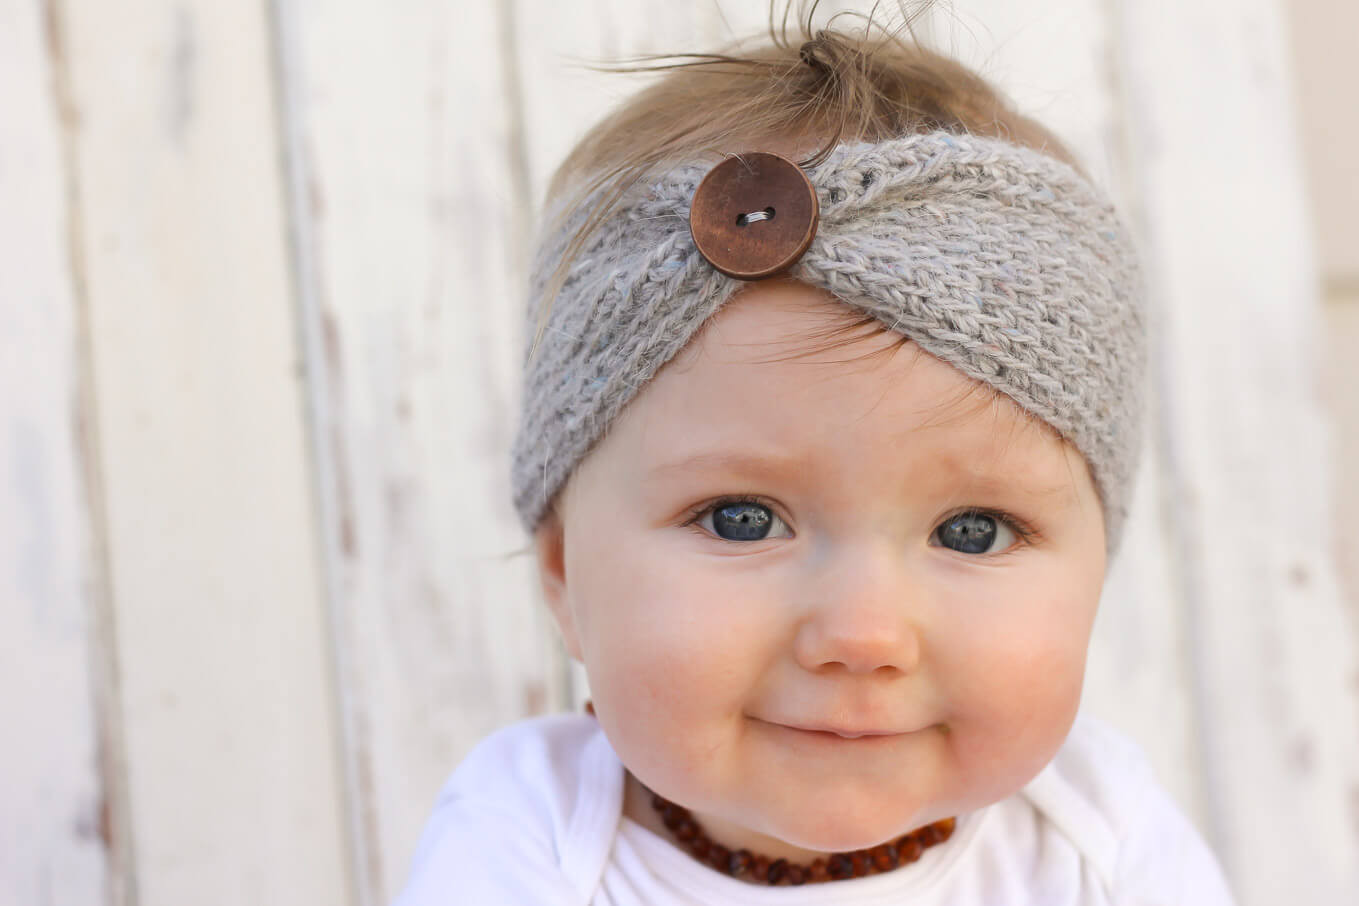 Crochet Headbands for Baby Awesome Free Crochet Headband Pattern Baby Adult Sizes Of Innovative 46 Pics Crochet Headbands for Baby